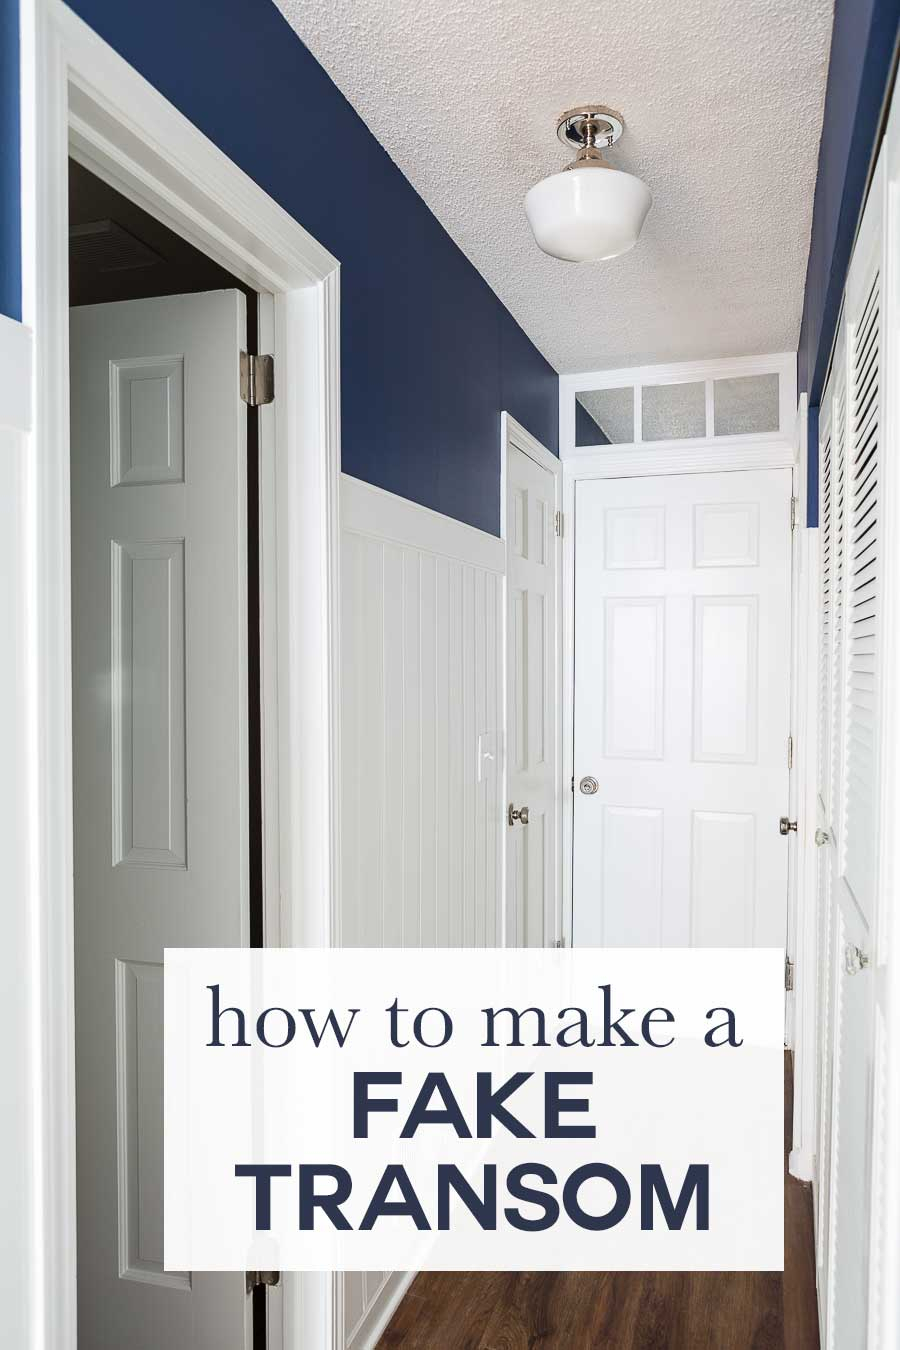 How To Make A Fake Transom Above A Door | In My Own Style In Faux Window Wood Wall Mirrors (View 19 of 30)